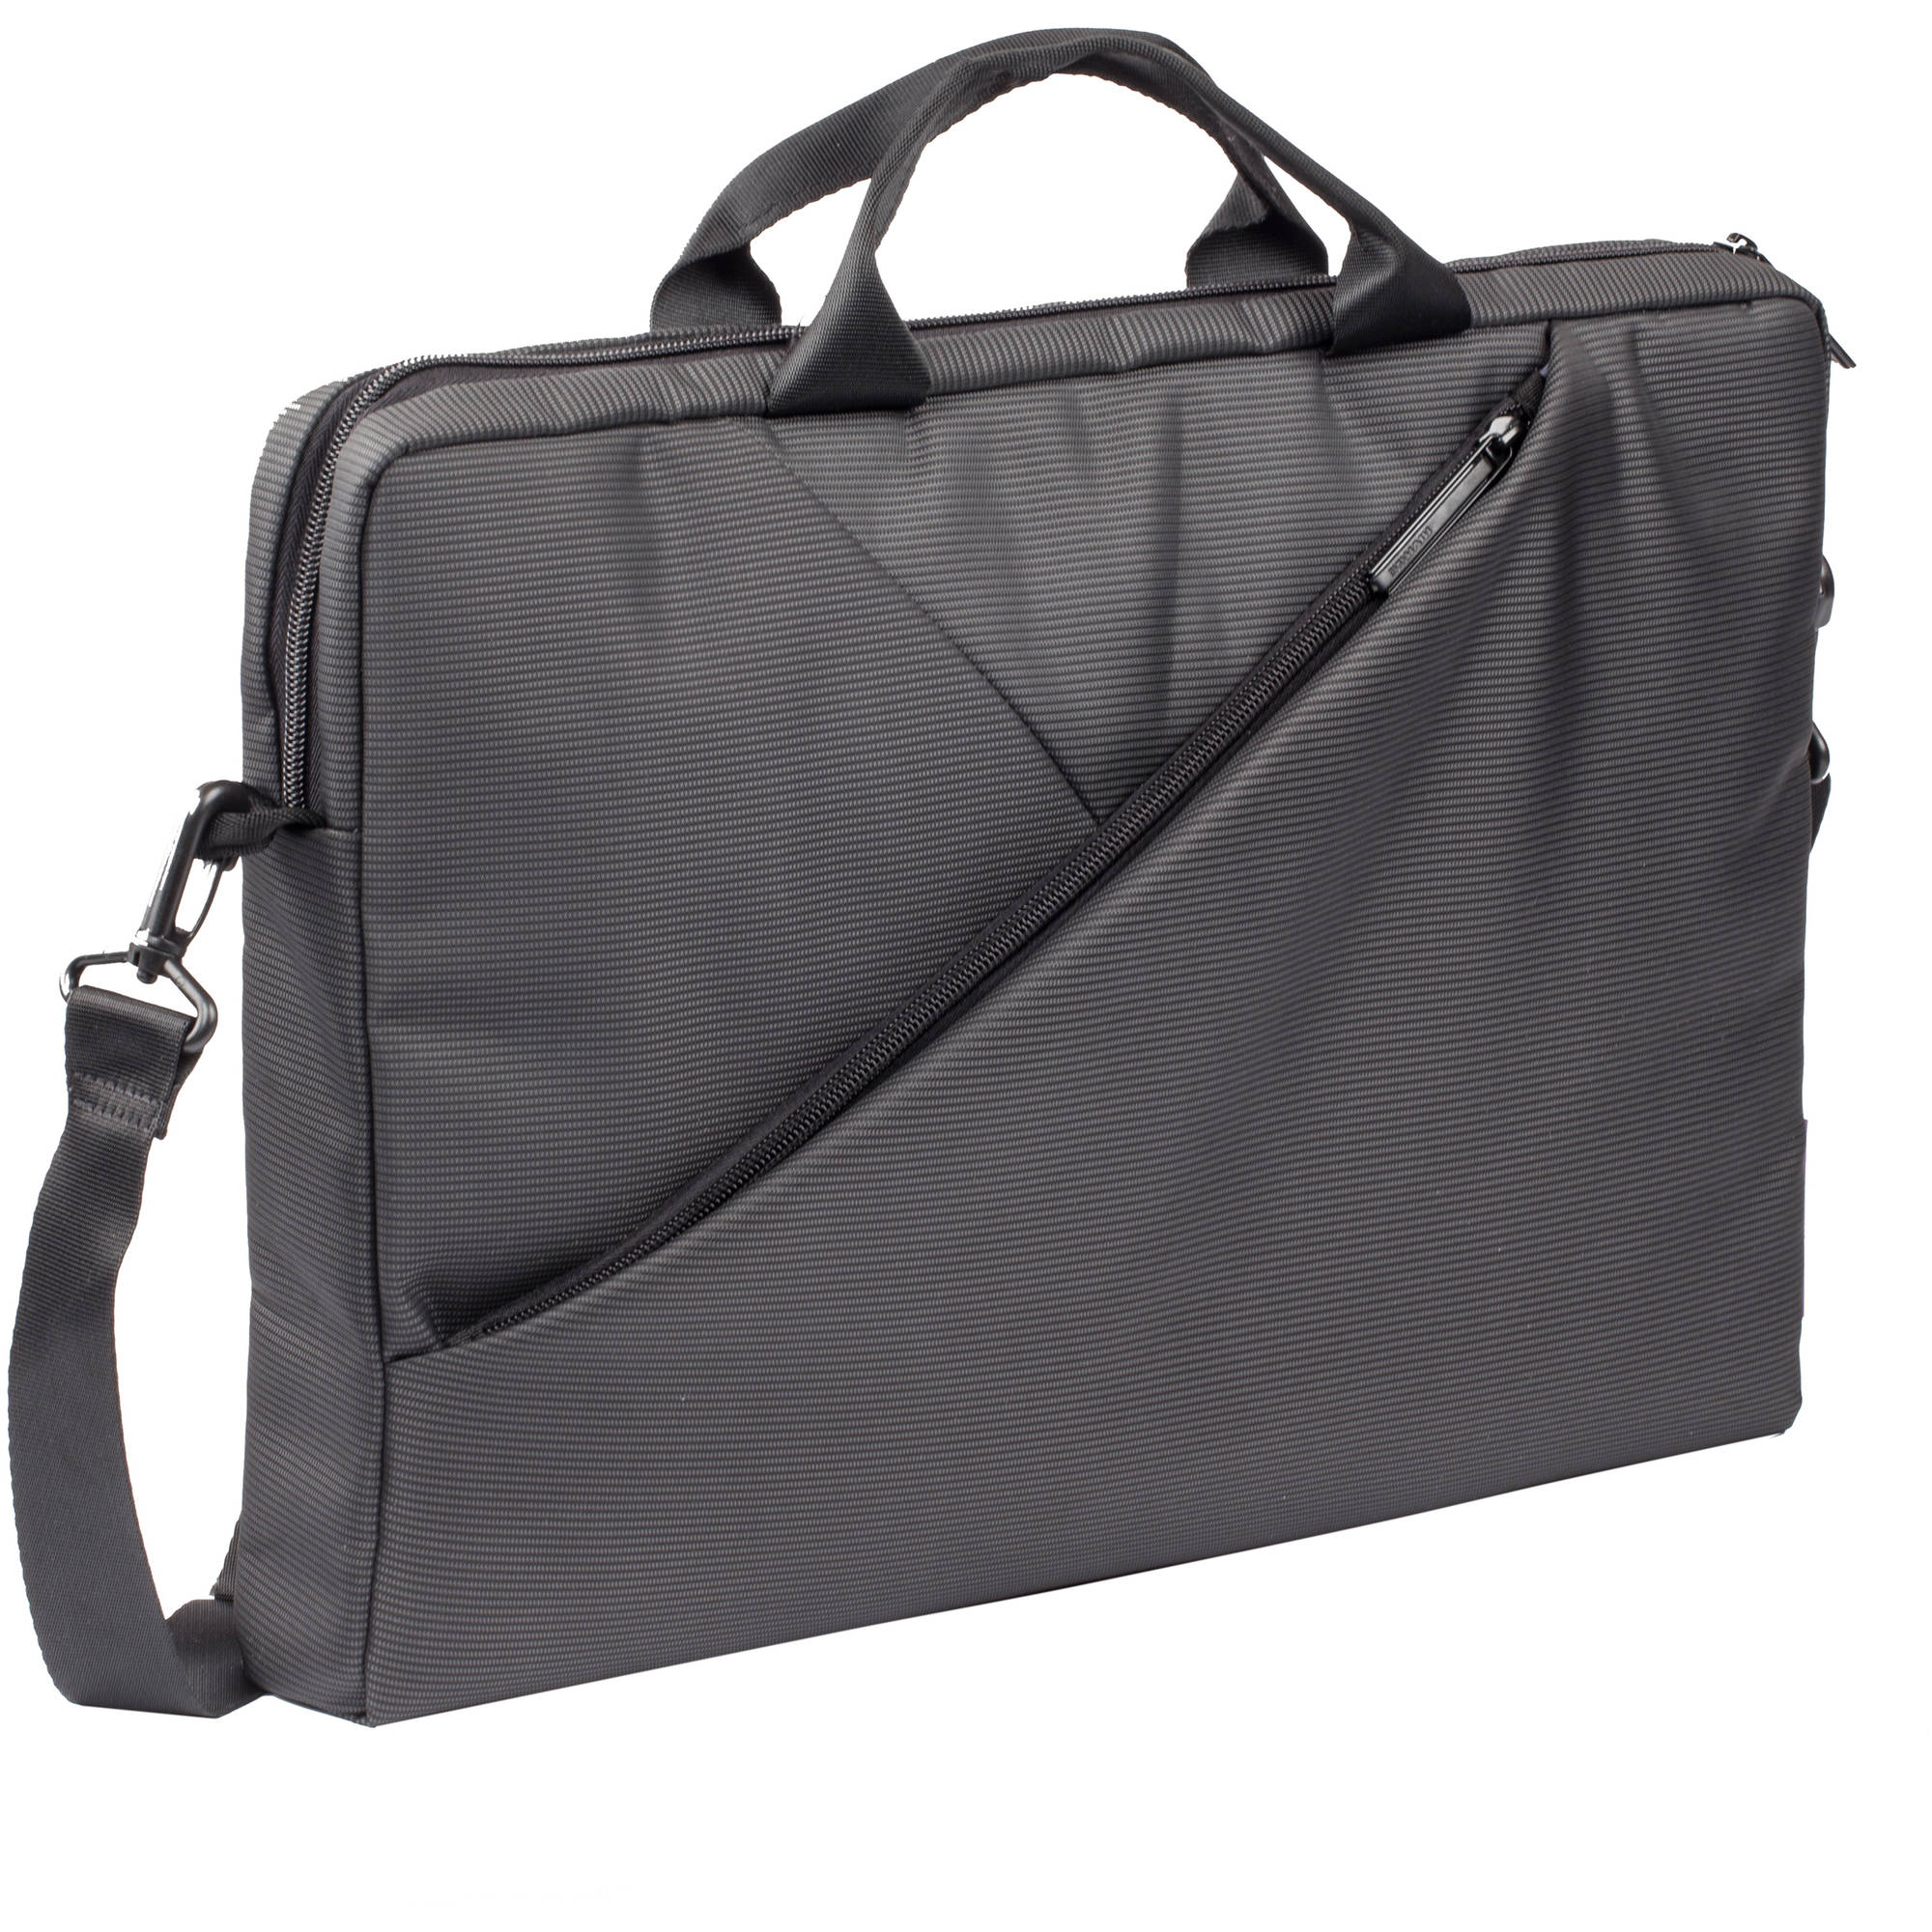 "RIVACASE 15.6"" Laptop Bag 8730, Grey"